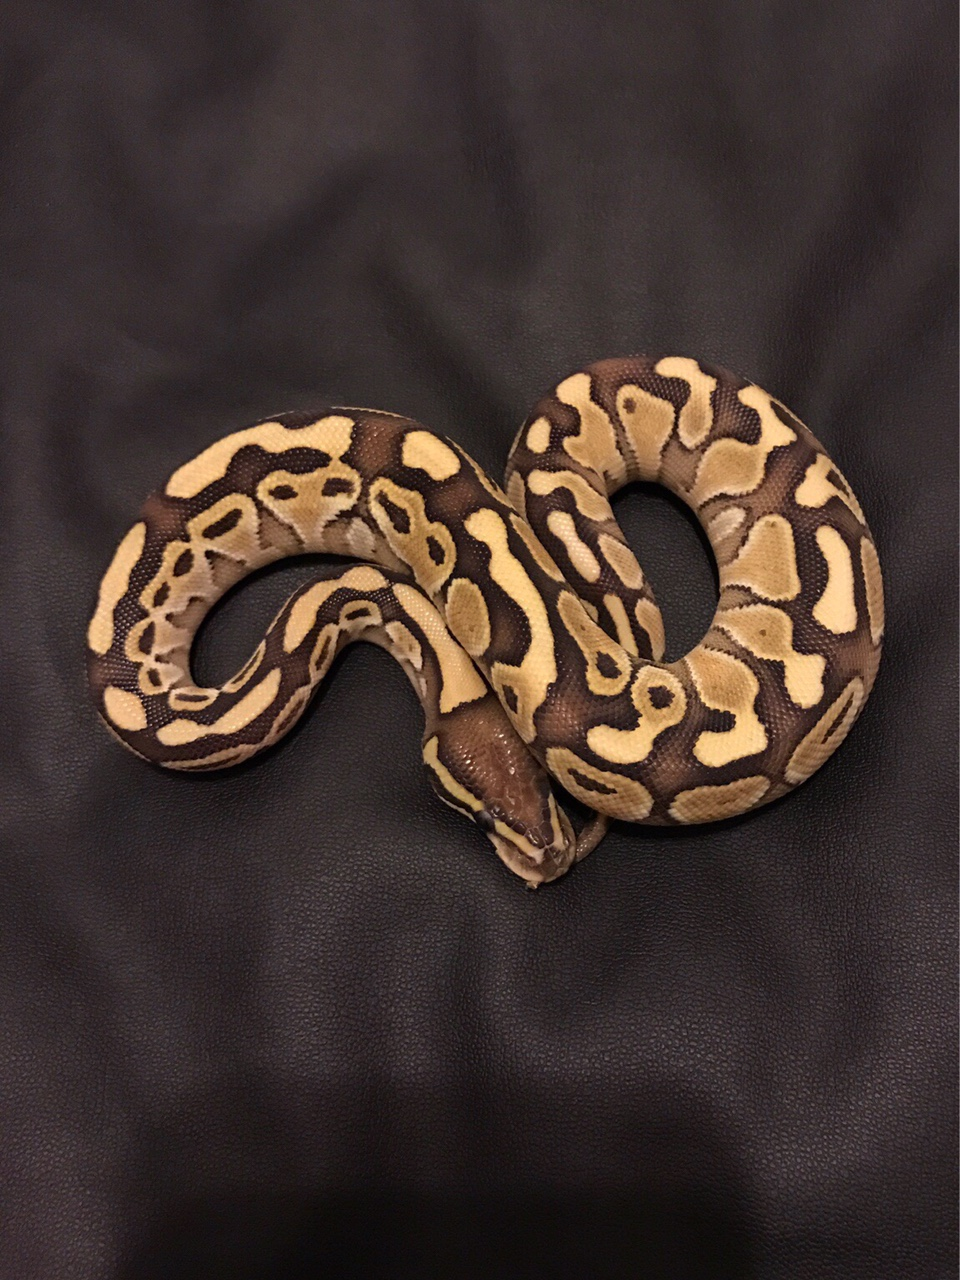 Good reptile shops/breeders in the Midlands? - Reptile Forums